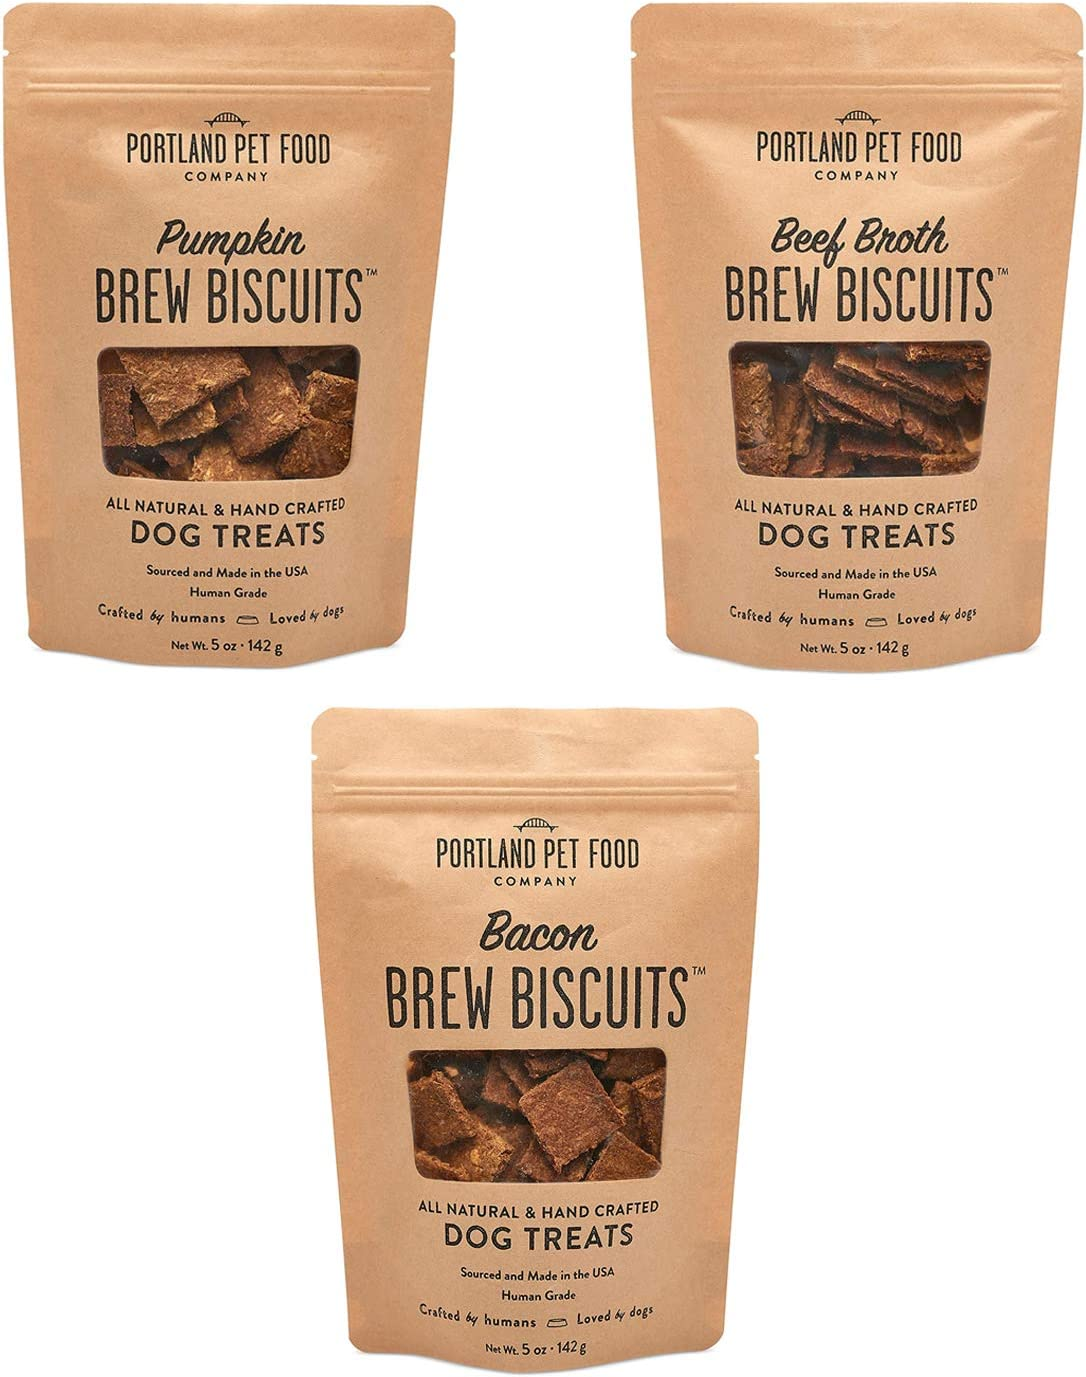 Portland Pet Food Company Brew Biscuit Dog Treats, All Natural, Human-Grade, USA Sourced and Made